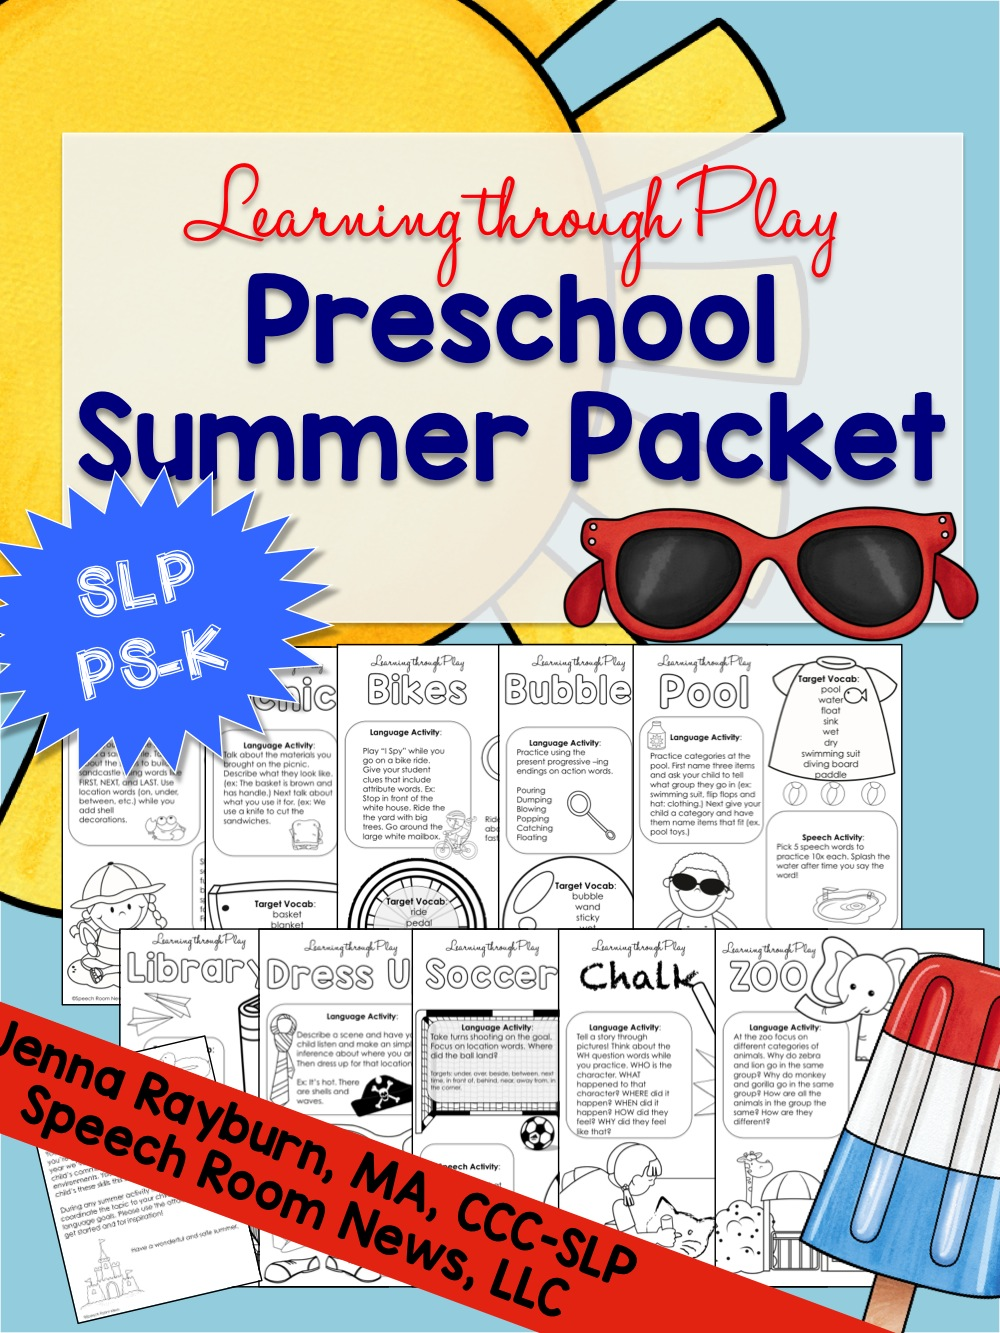 Summer Preschool Packet: Learning Through Play